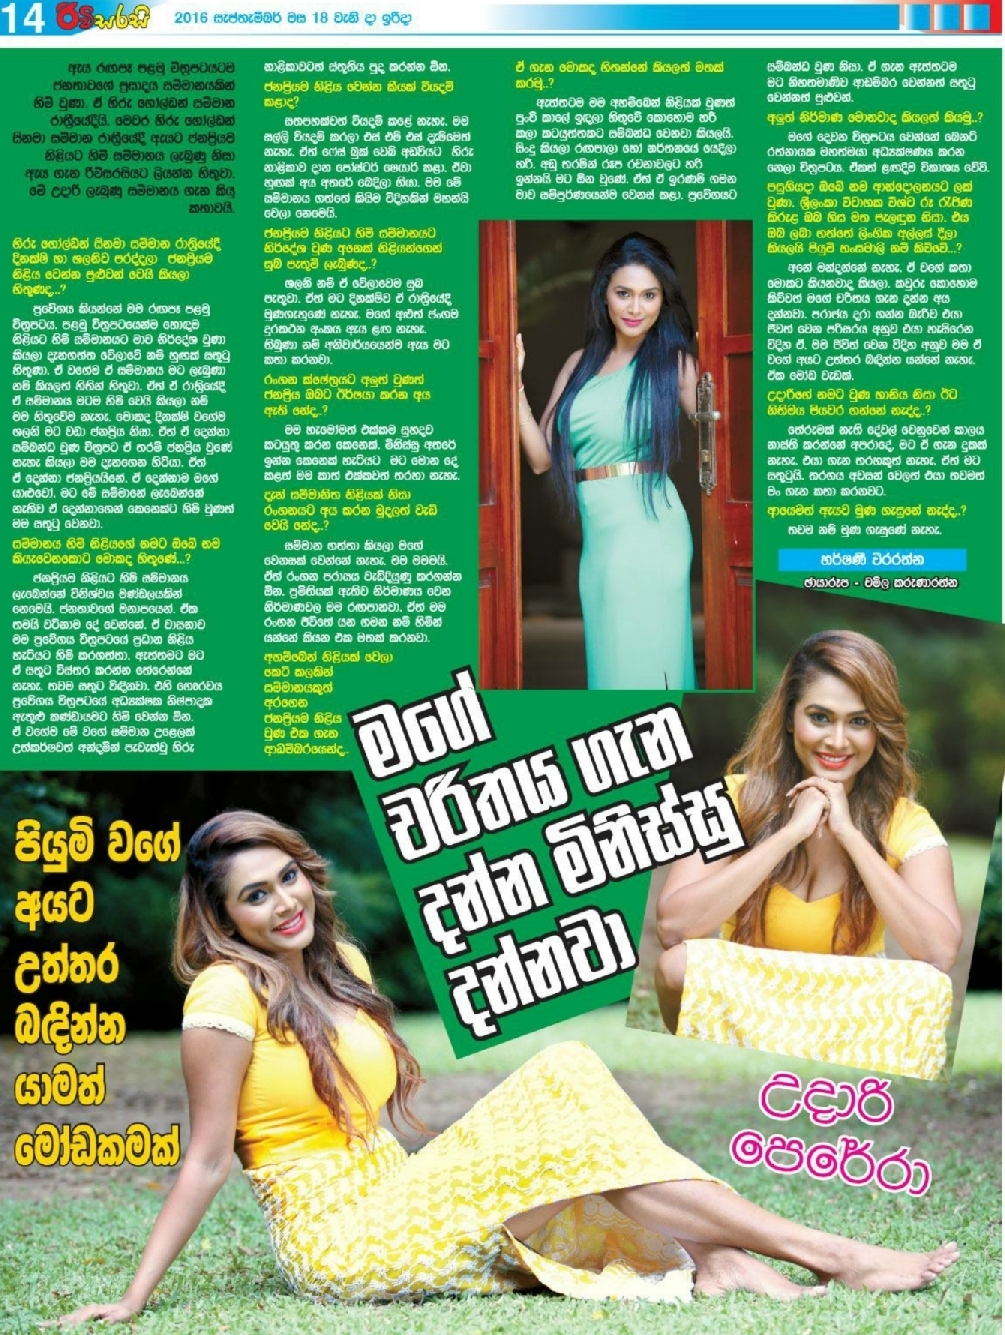 Gossip Chat With Actress Udari Perera | Gossip Lanka Hot News